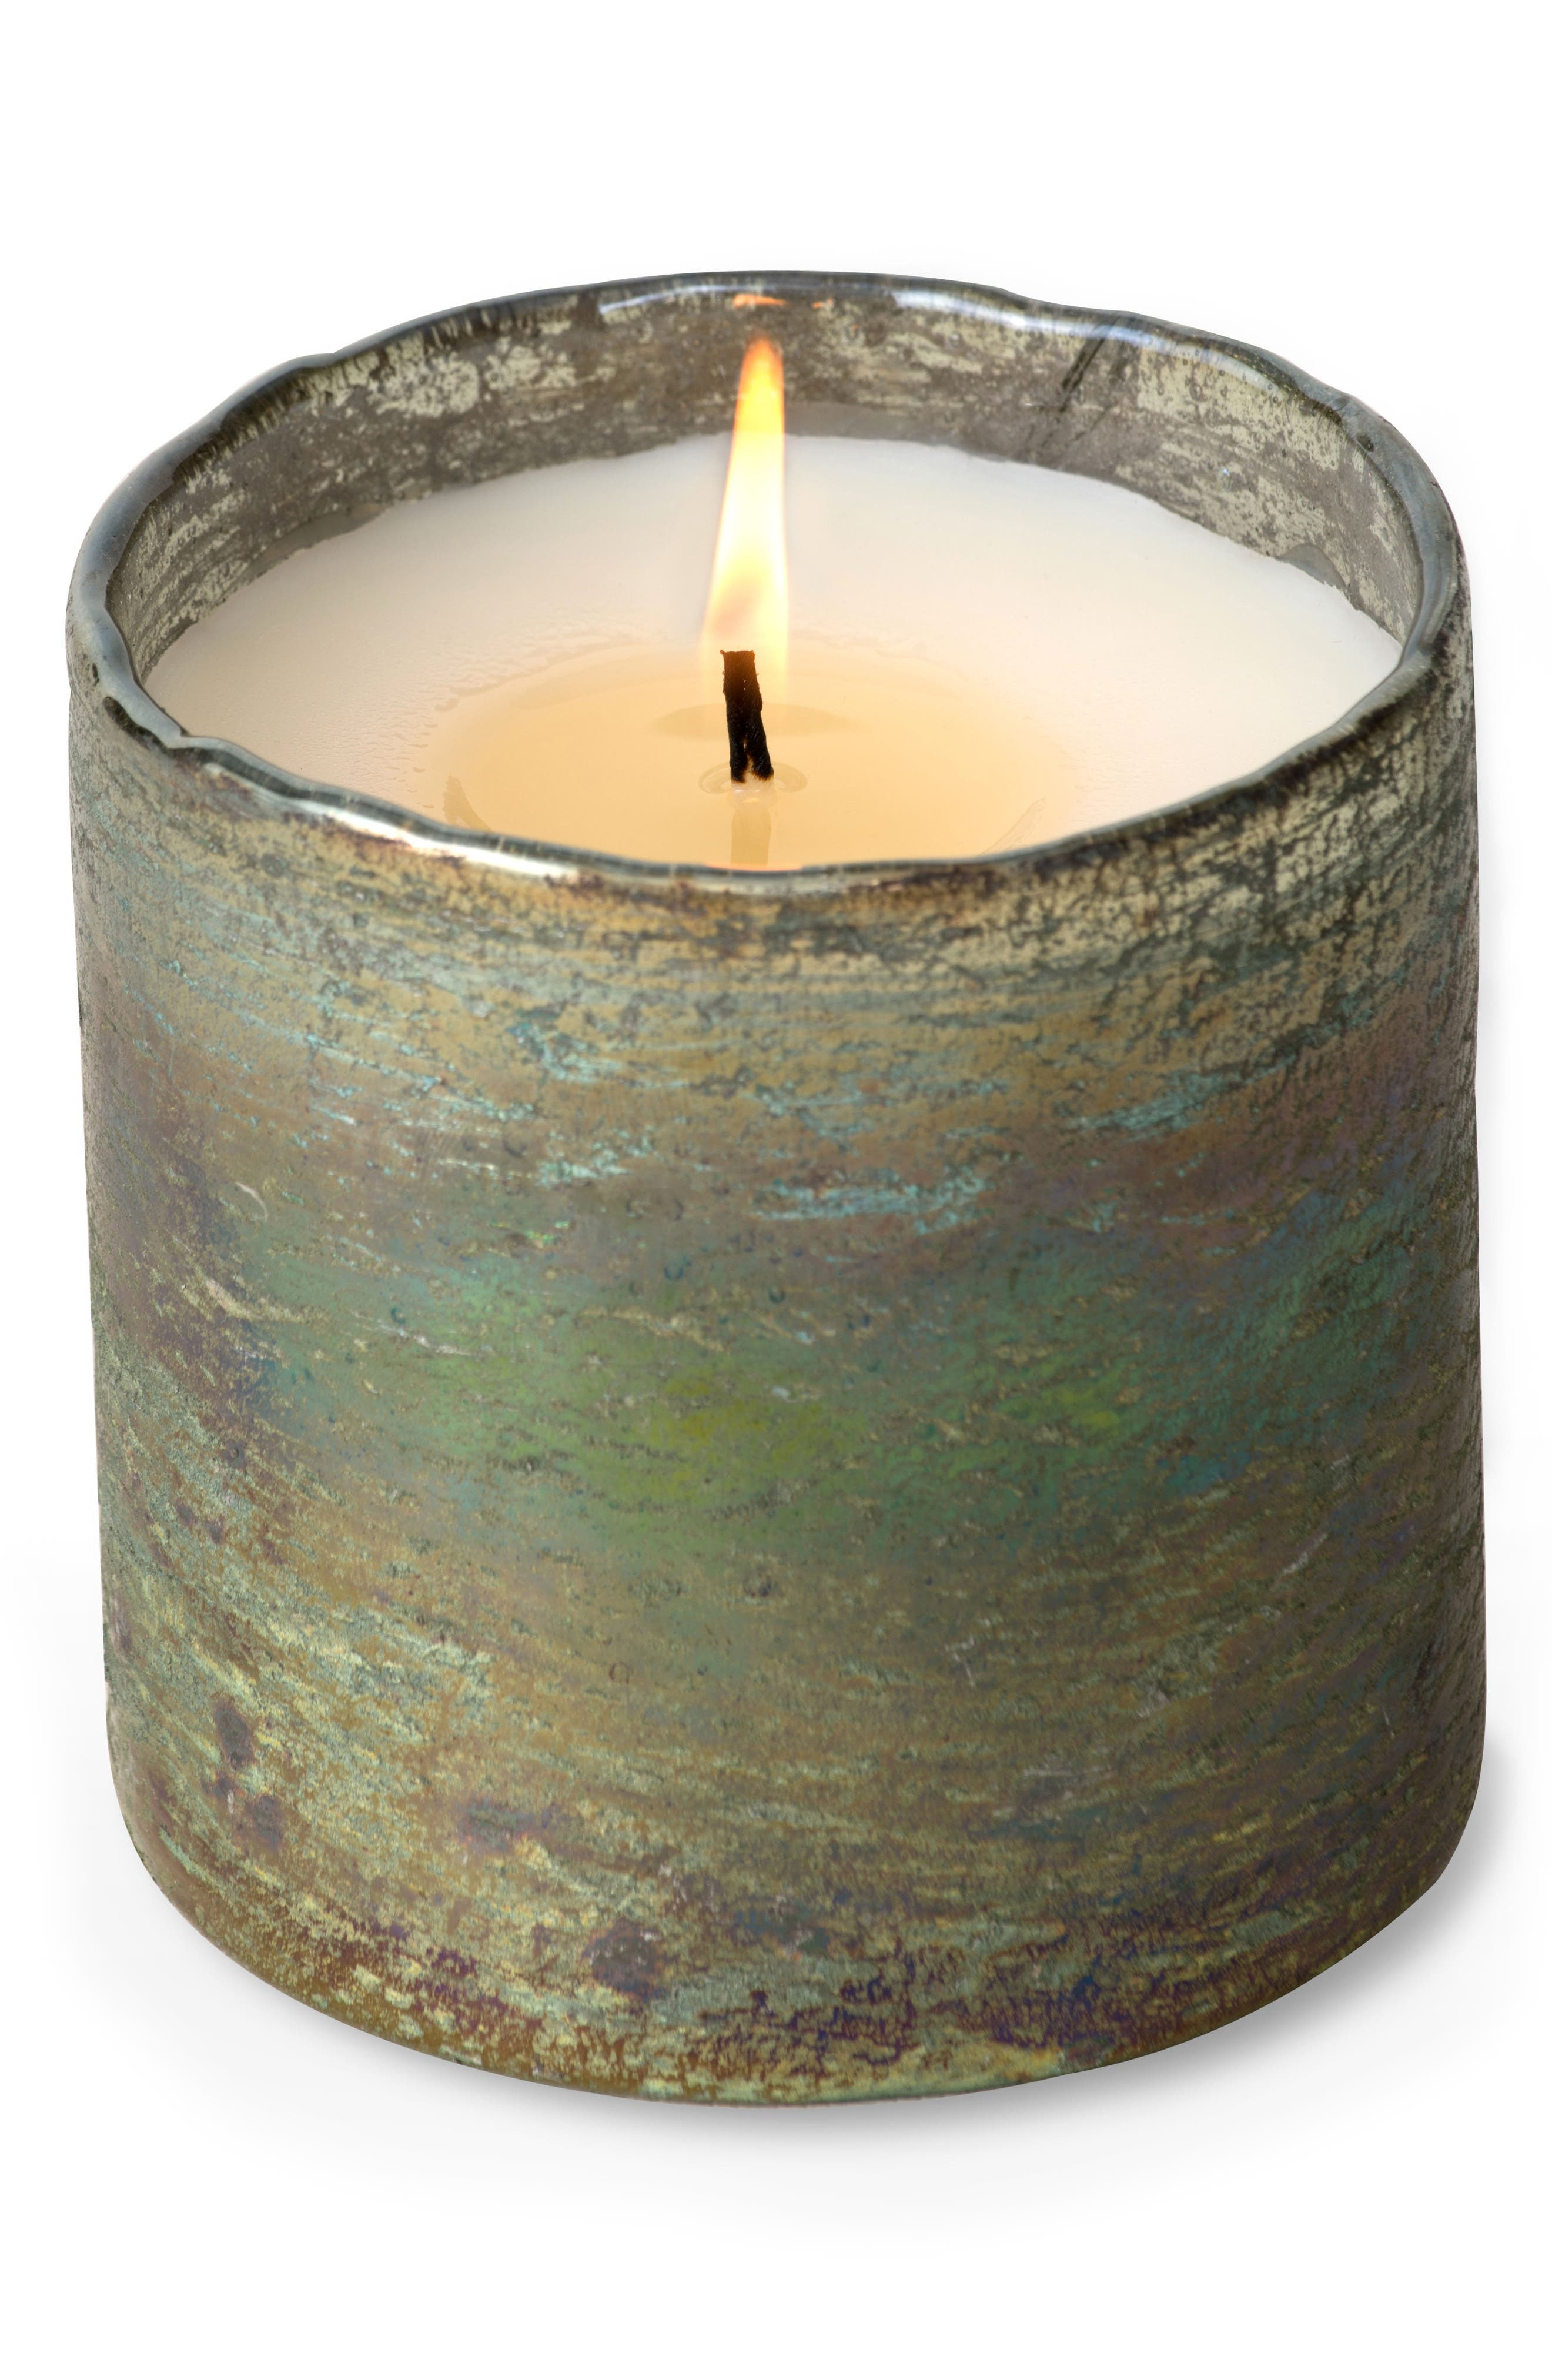 Himalayan Trading Post Tumbler Candle (Nordstrom Exclusive)